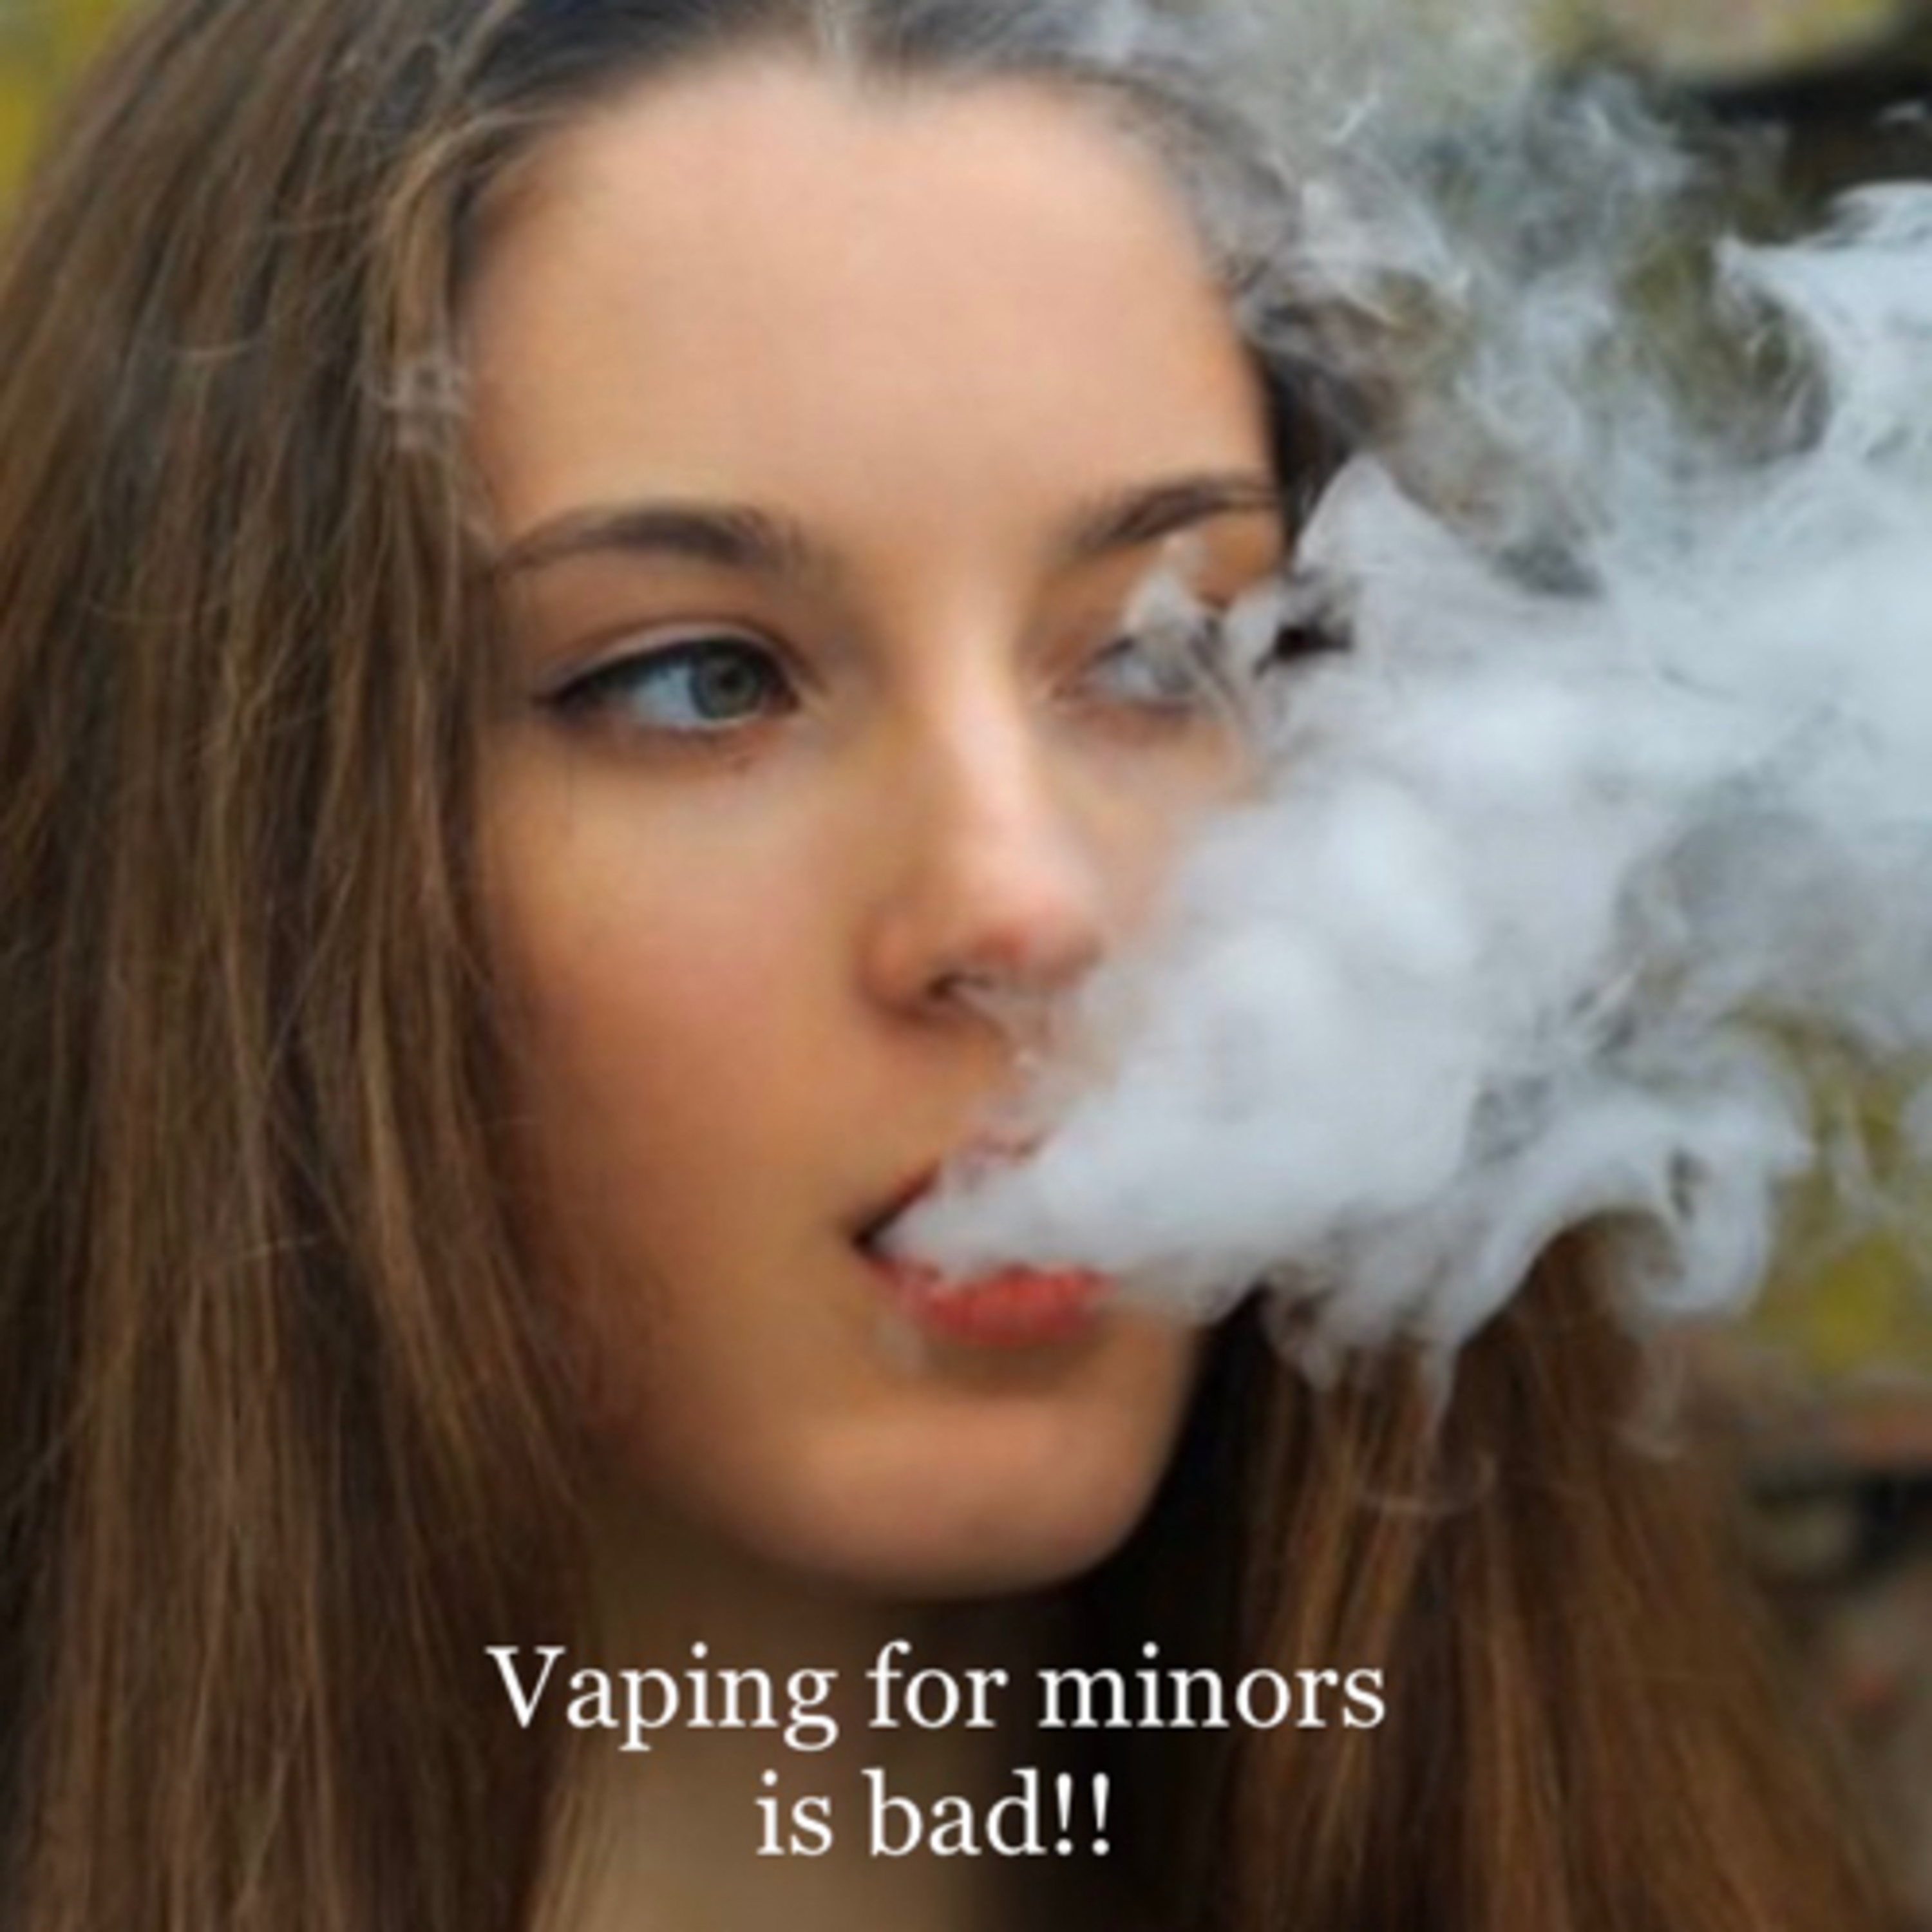 Vaping for minors is bad!!